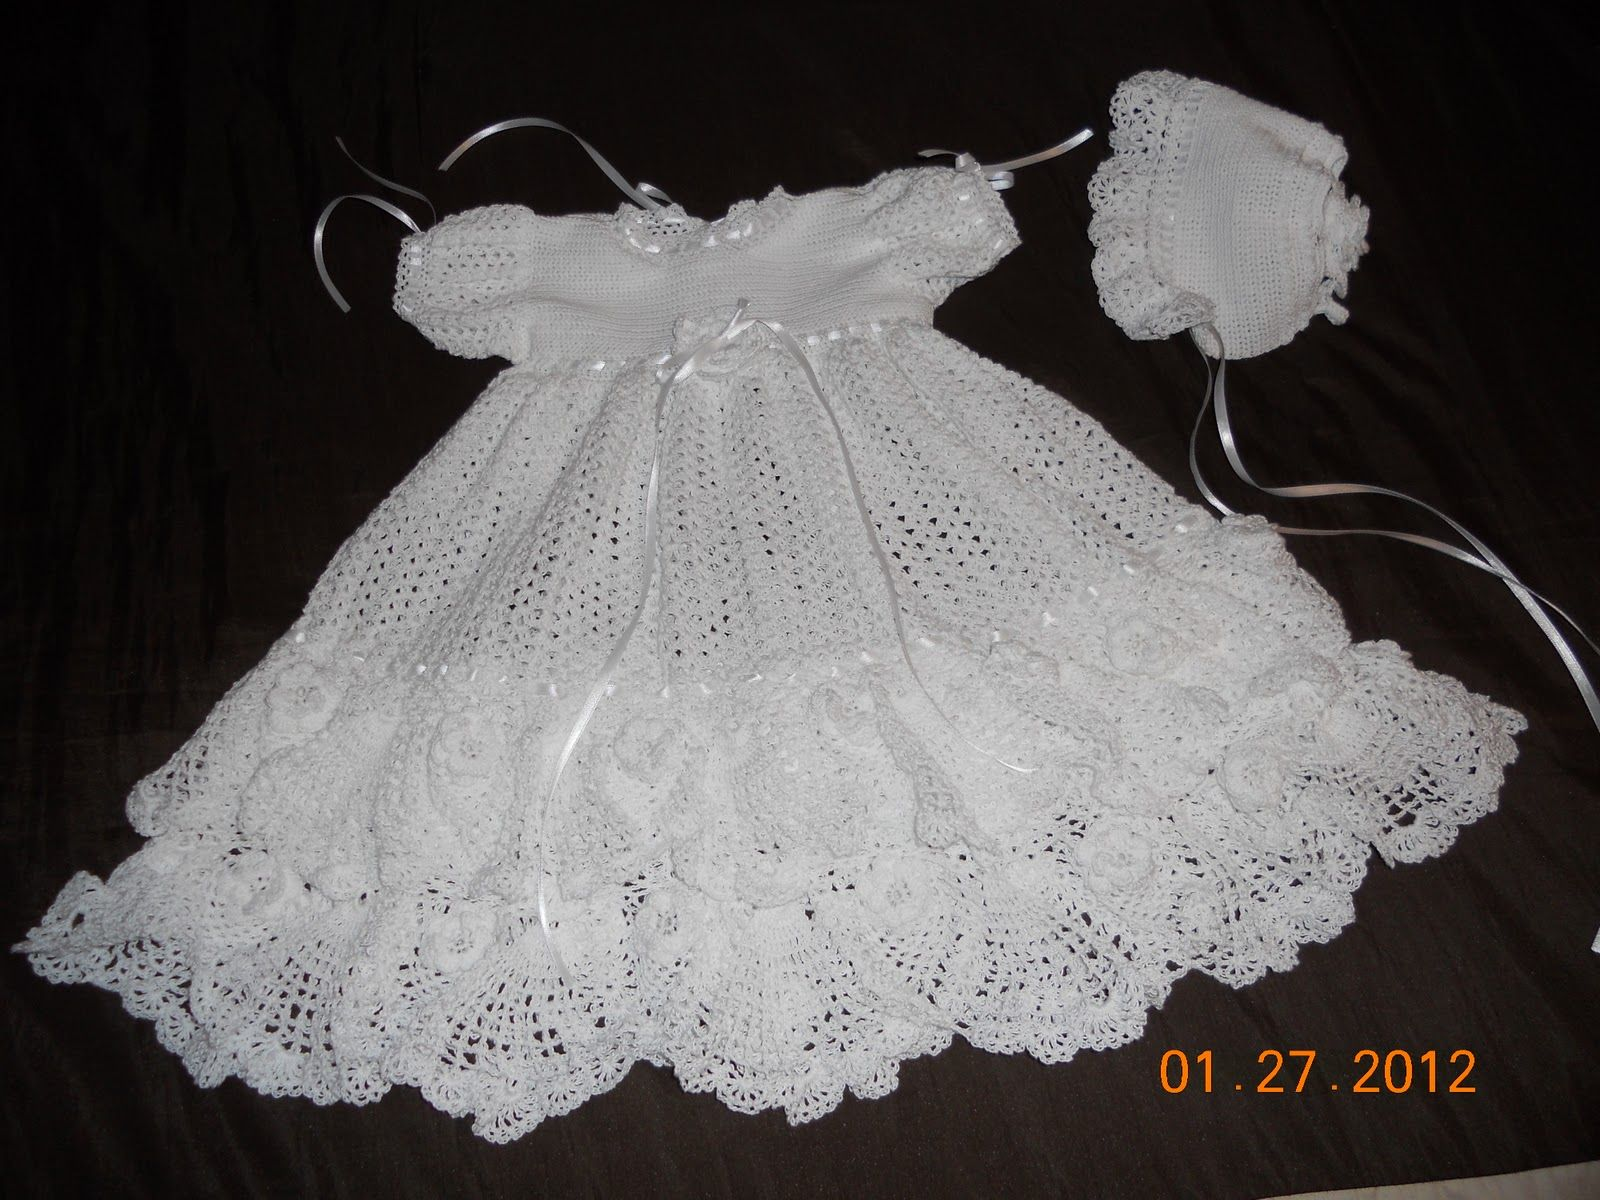 Crochet Patterns Baptism Gown For Girls Finished The Christening